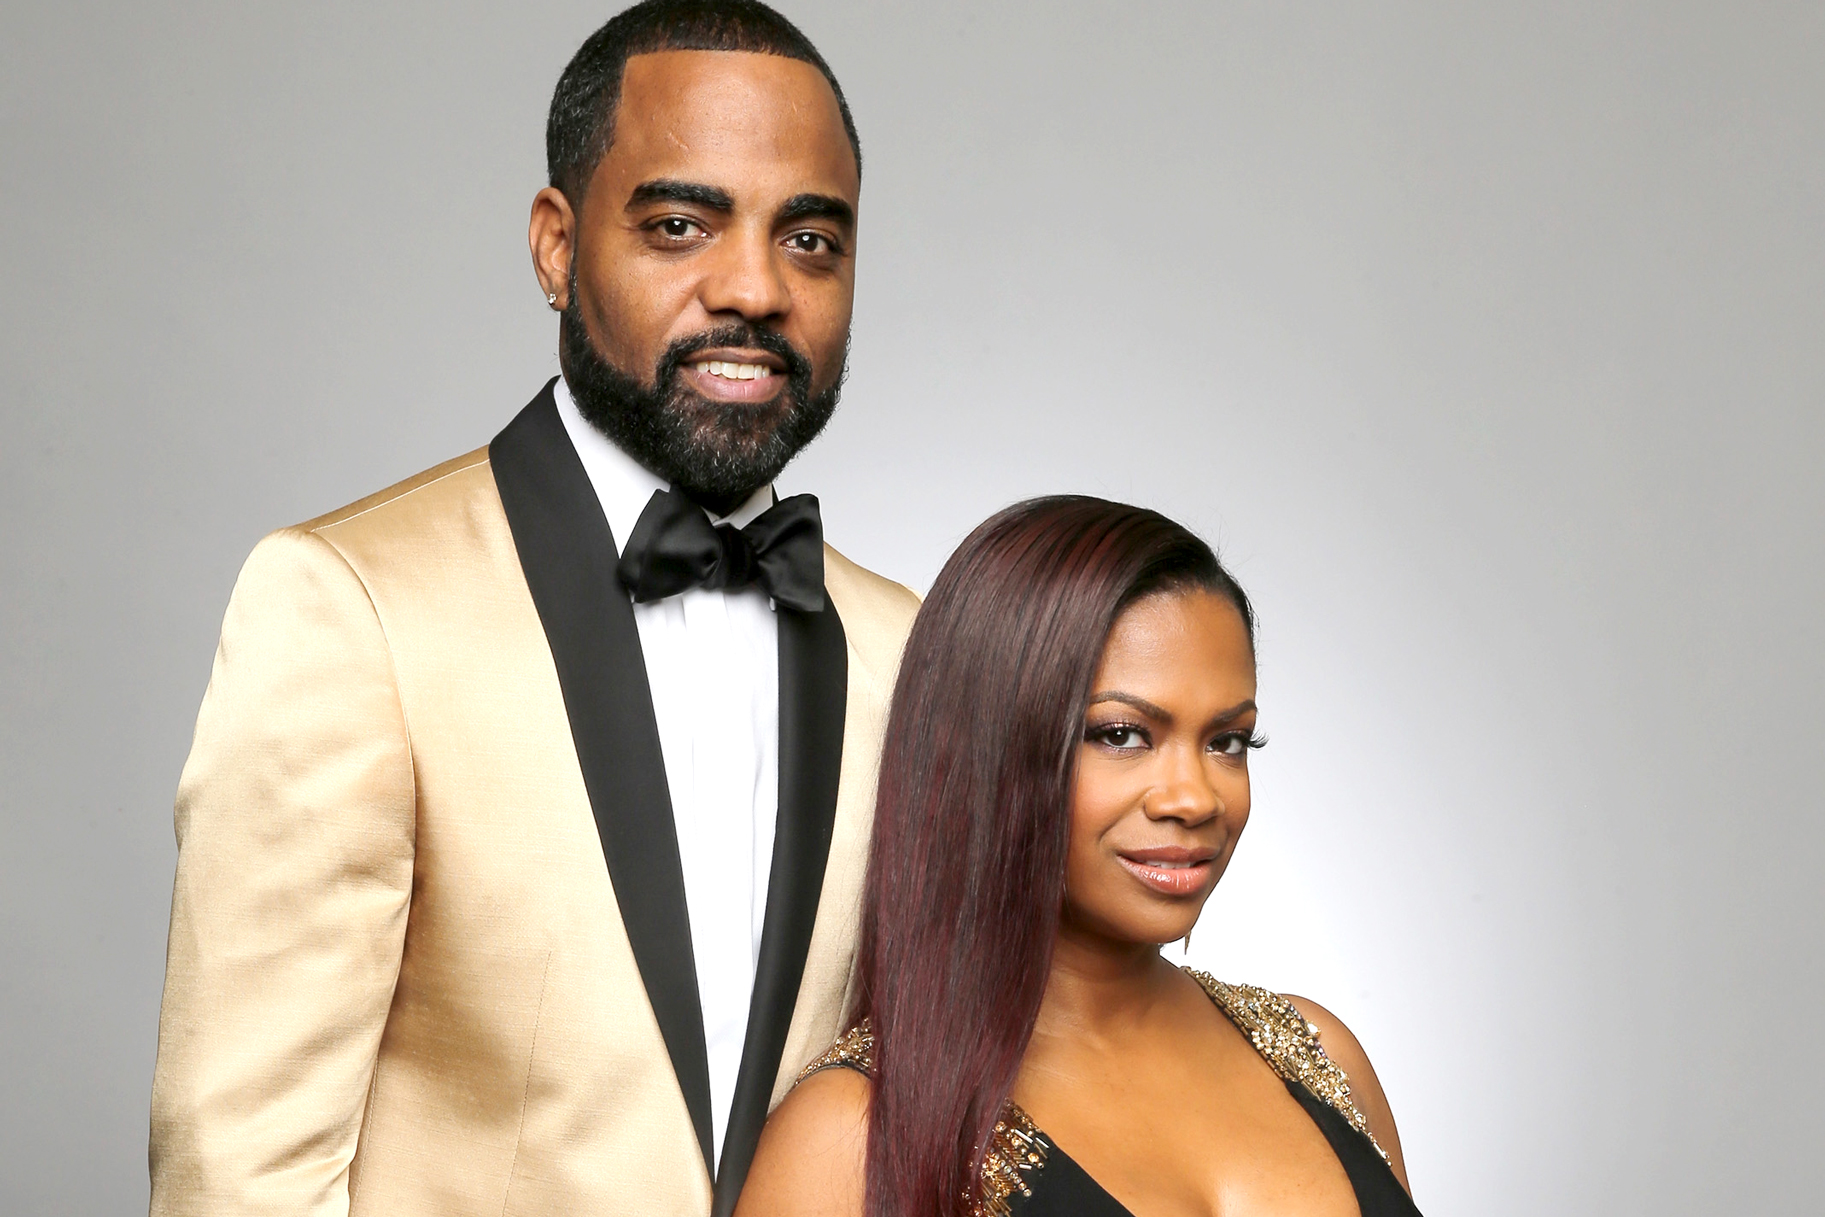 Kandi Burruss And Todd Tucker Attended The Clive Davis Party And Looked Gorgeous